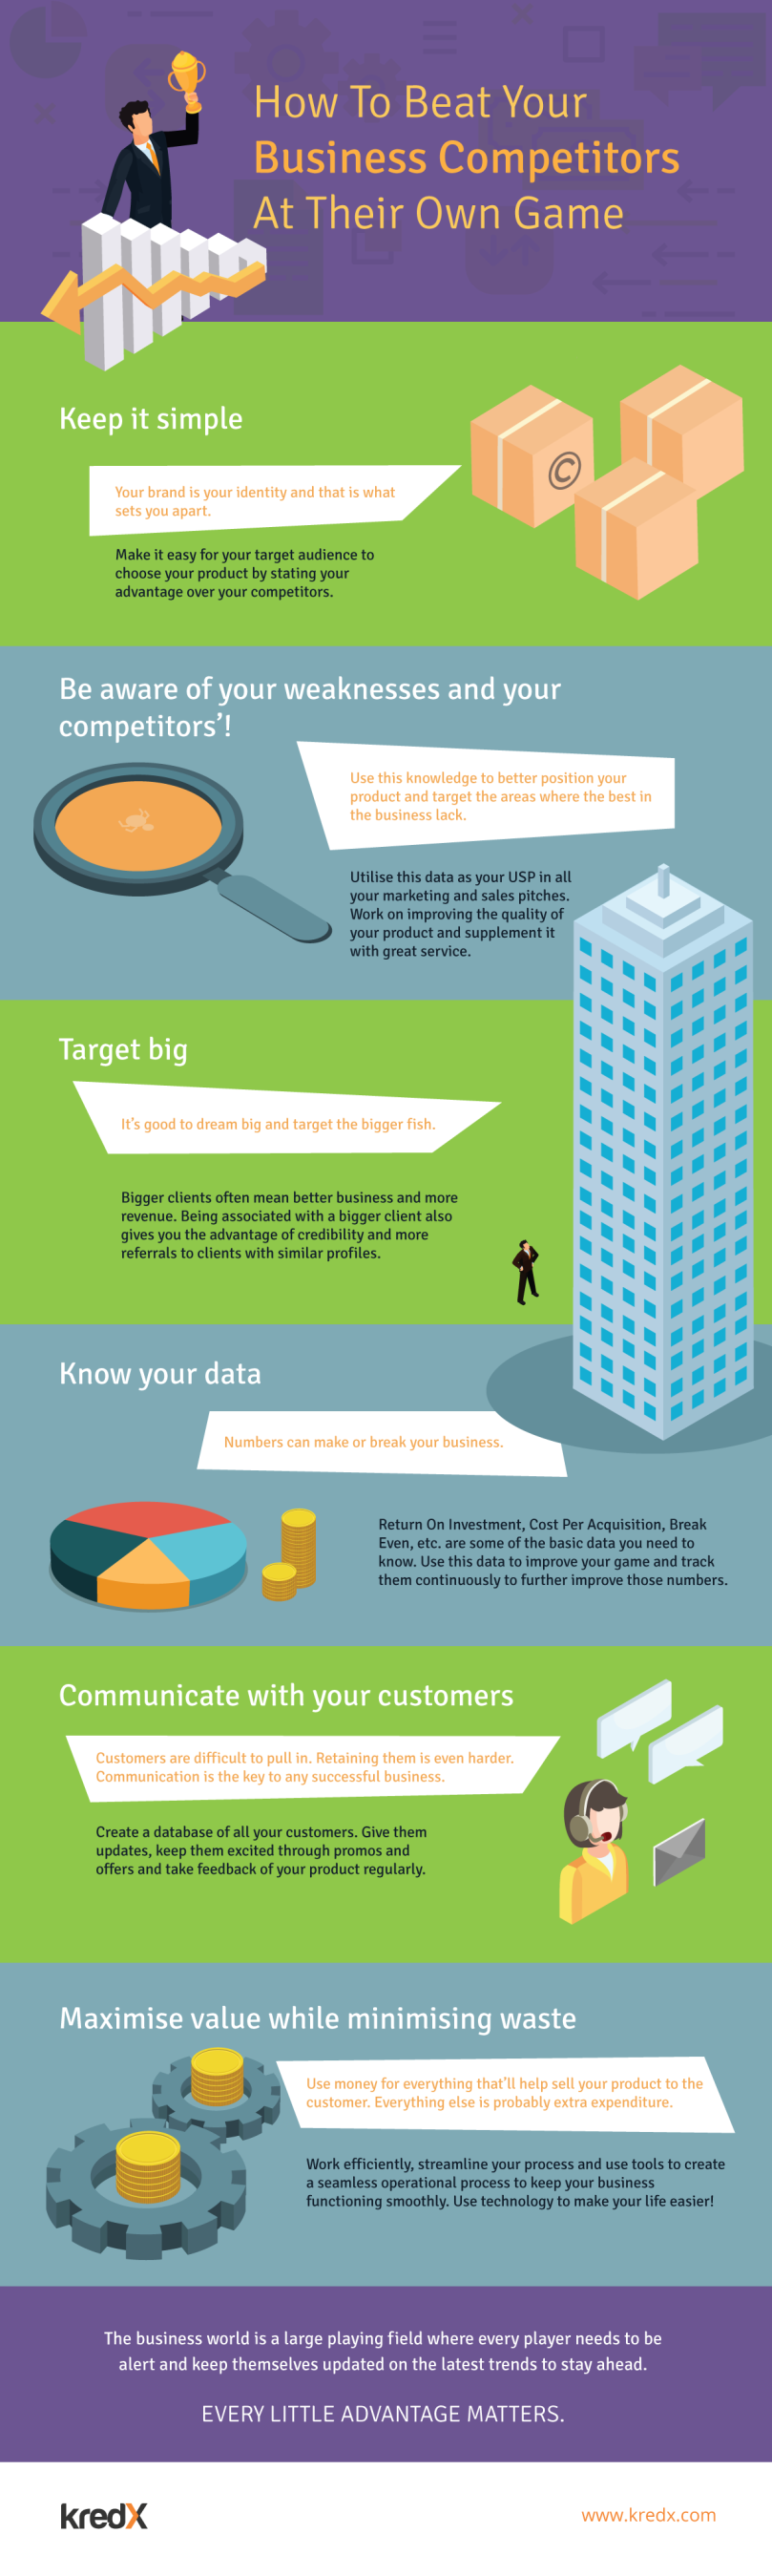 Infographic: How to beat your competitors in business